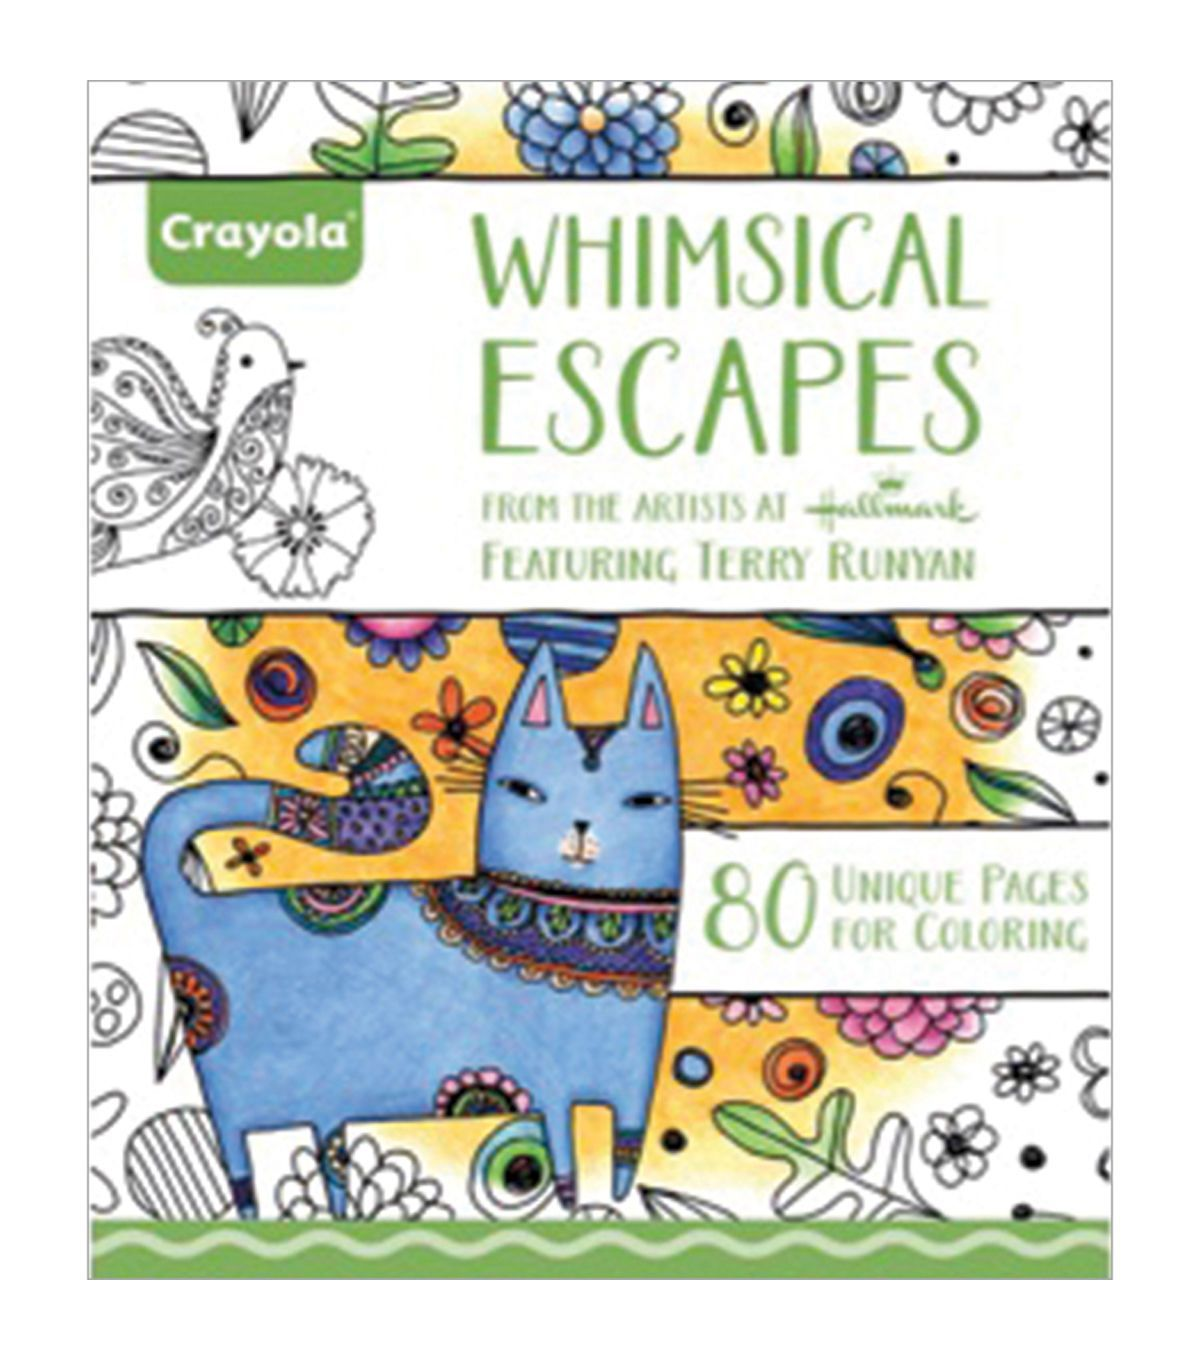 The botany coloring book by paul young - Crayola Whimsical Escapes Coloring Book